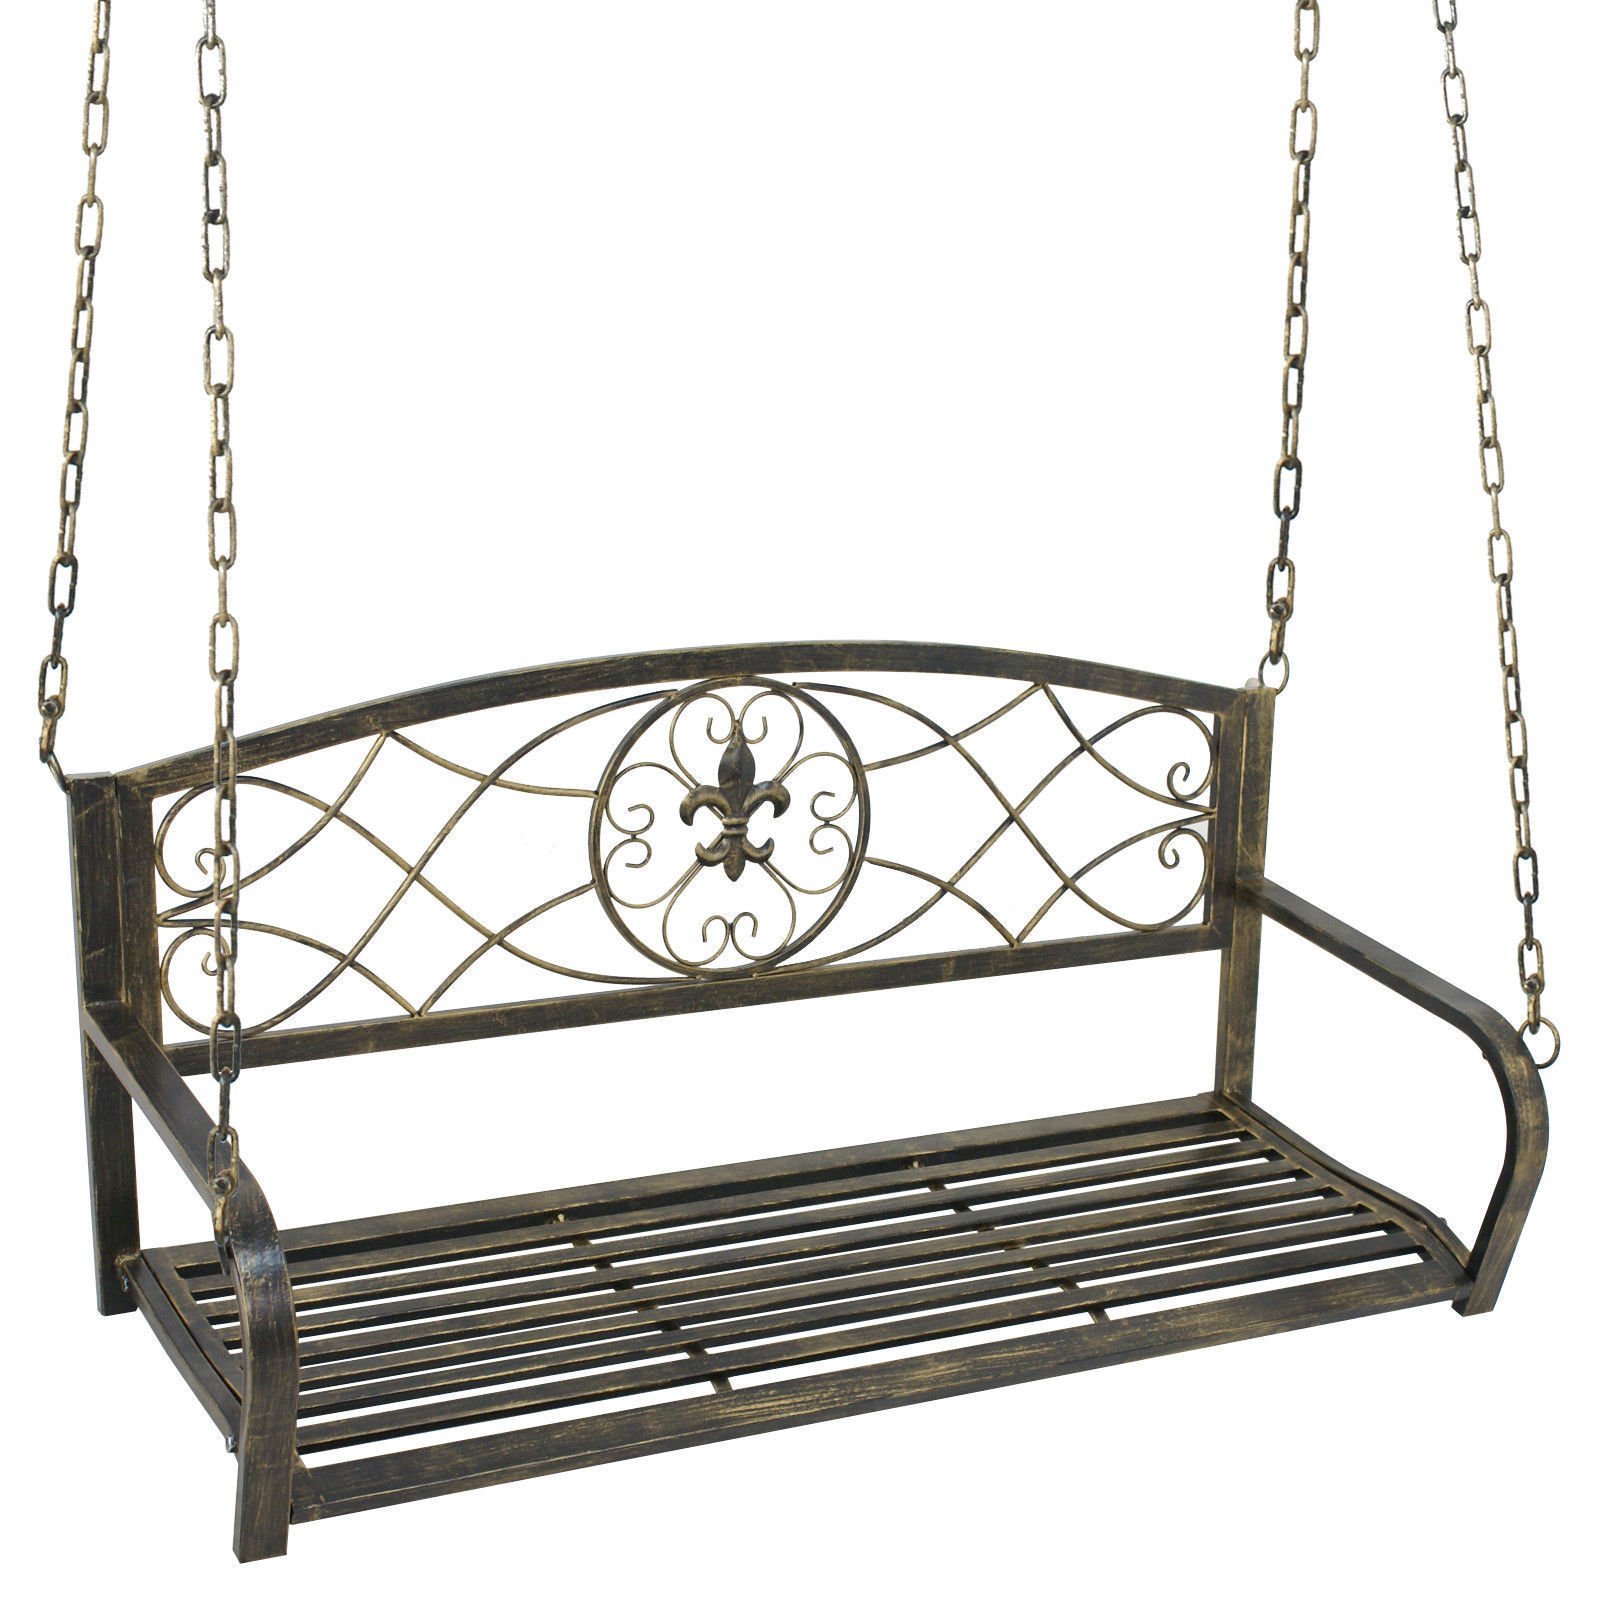 BBBuy Treated Porch Swing - Antique Metal Iron Patio Hanging Porch Swing Chair Bench Garden Swing Seat with Chains Outdoor Furniture Yard